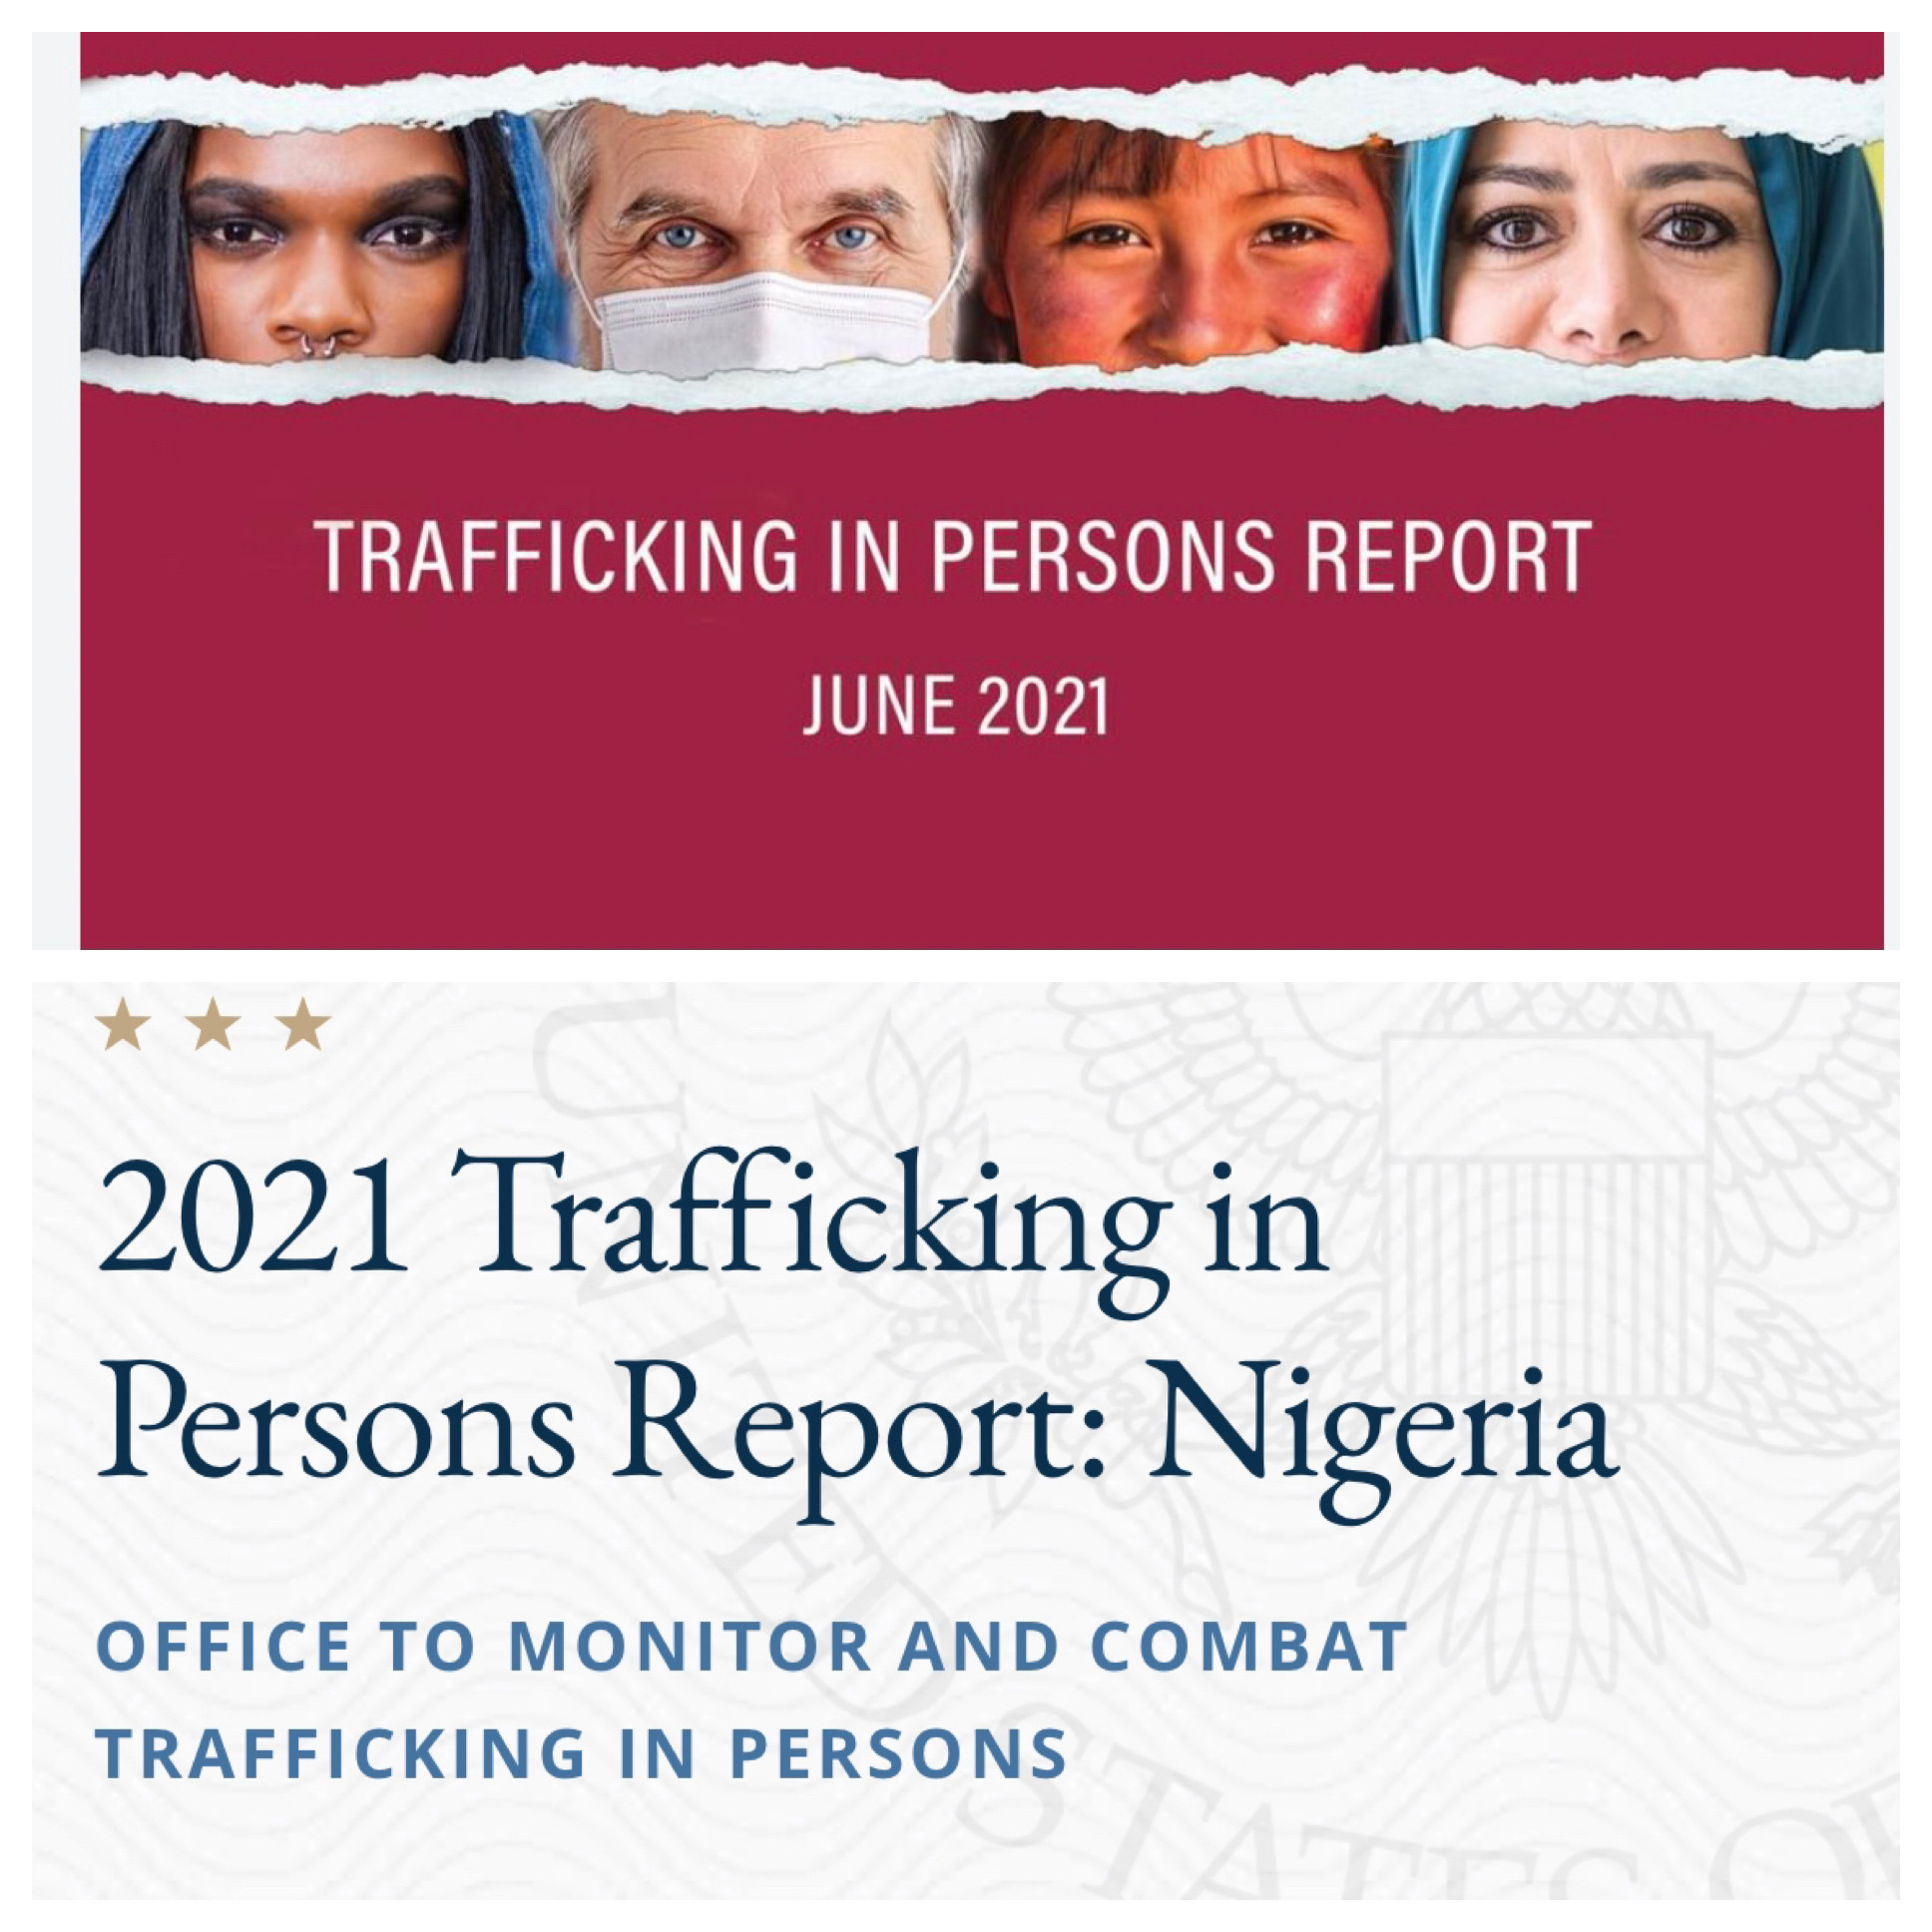 Nigeria Upgraded to Tier 2 on US State Department 2021 TIP Report